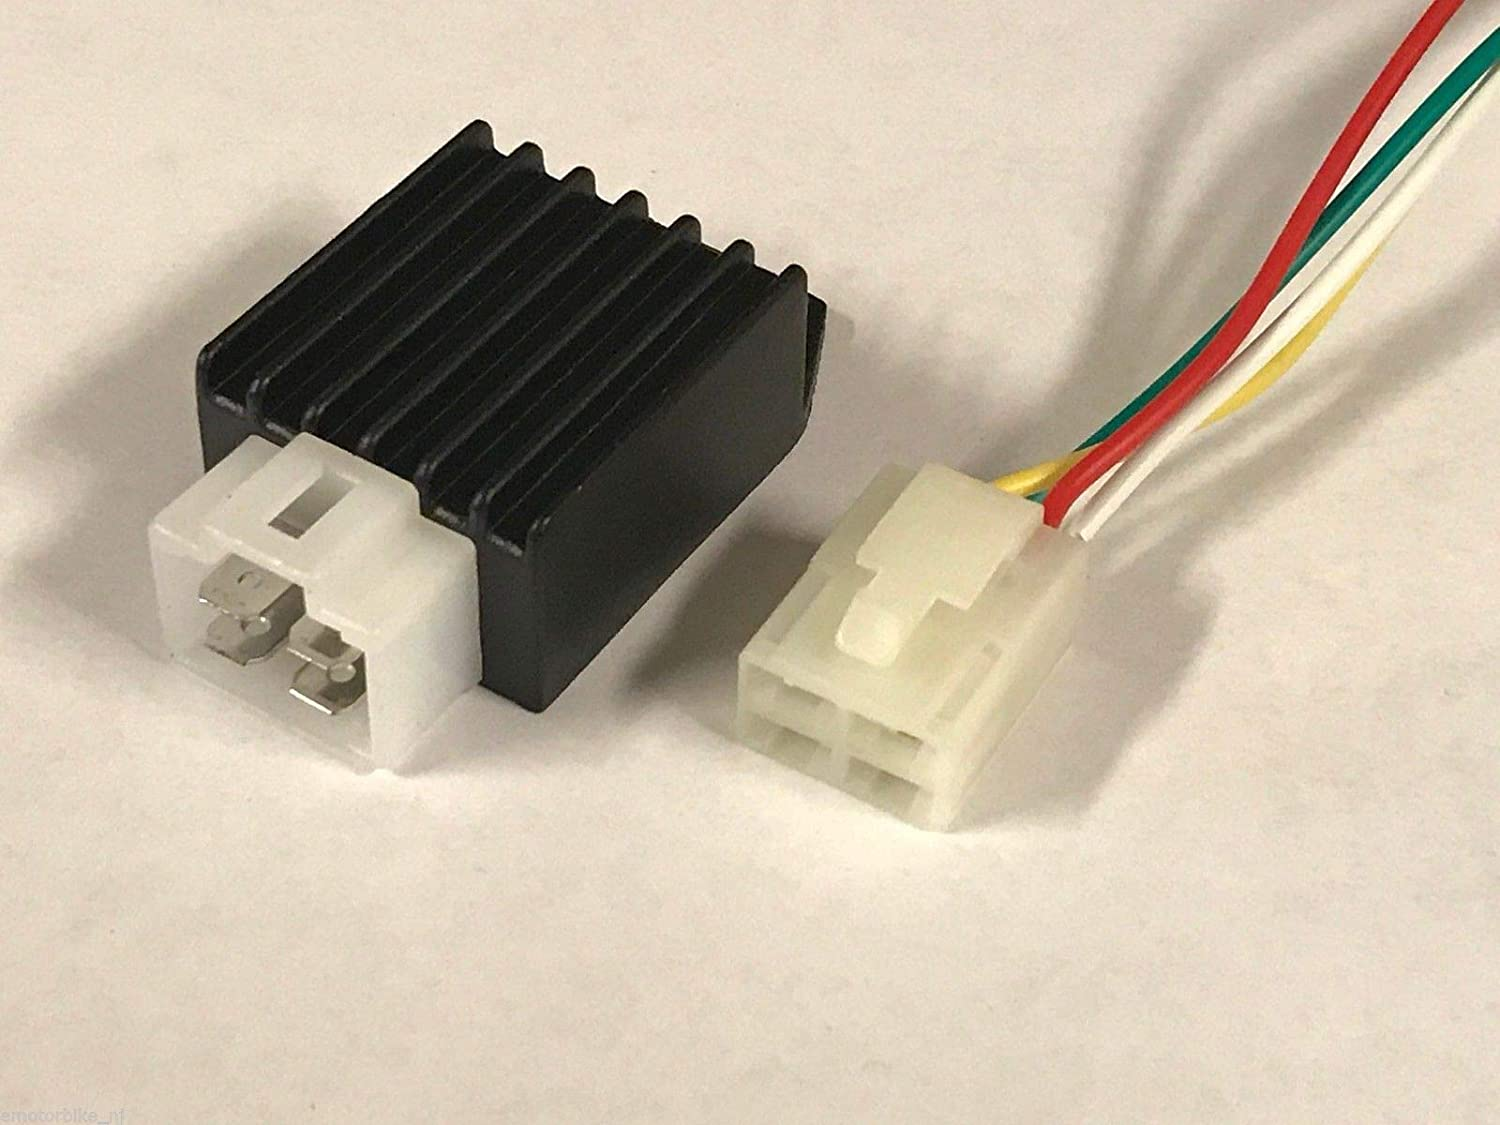 MRS 4 PINS VOLTAGE REGULATOR RECTIFIER with 4 WIRES CONNECTOR PLUG for 50cc 70cc 90cc 110cc 125cc ATV GO-KART DIRT PIT BIKE SCOOTER//SHIPS from USA